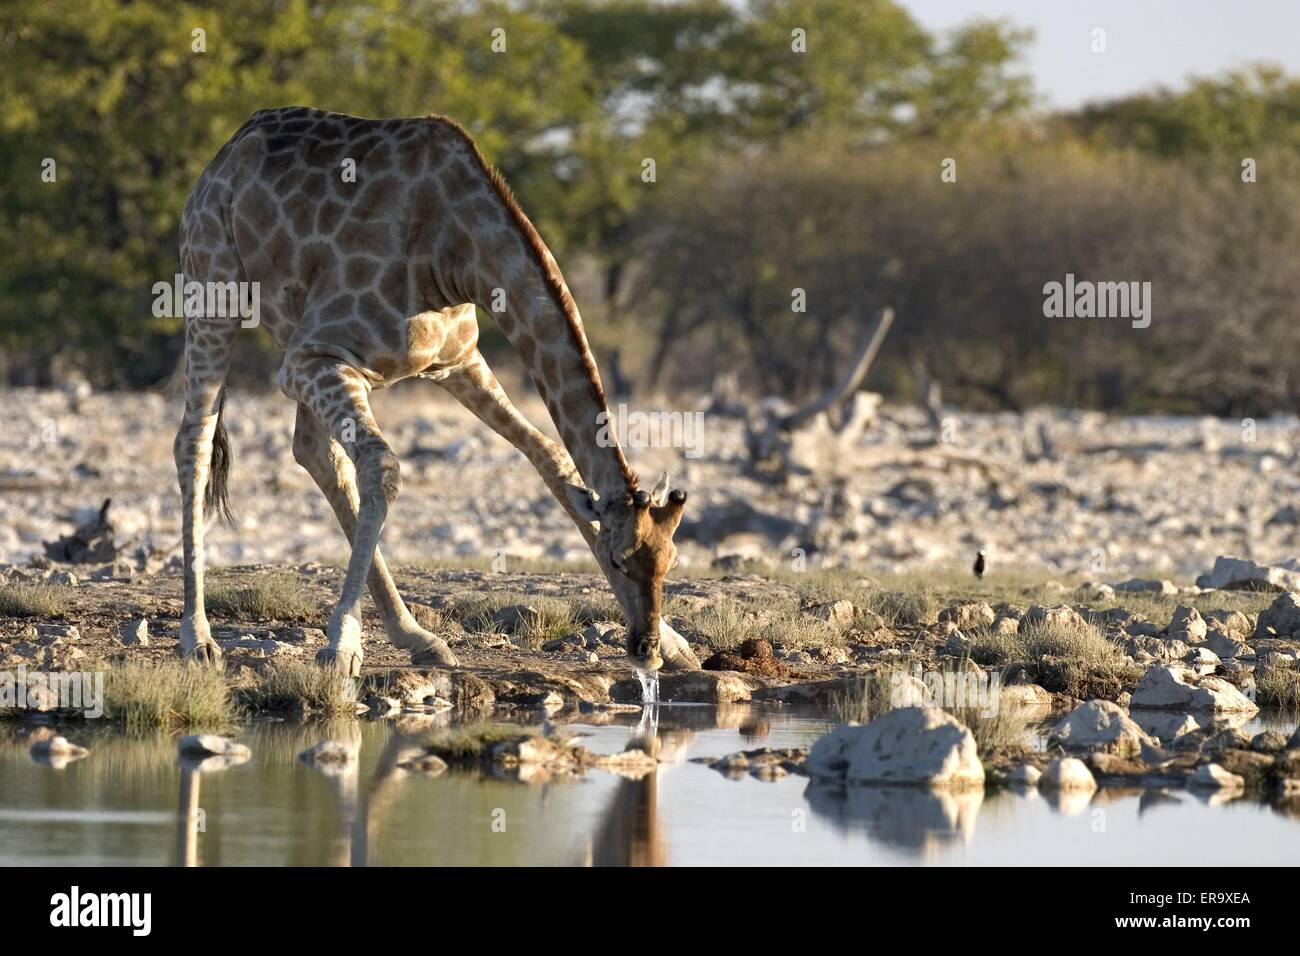 Girafe potable Photo Stock